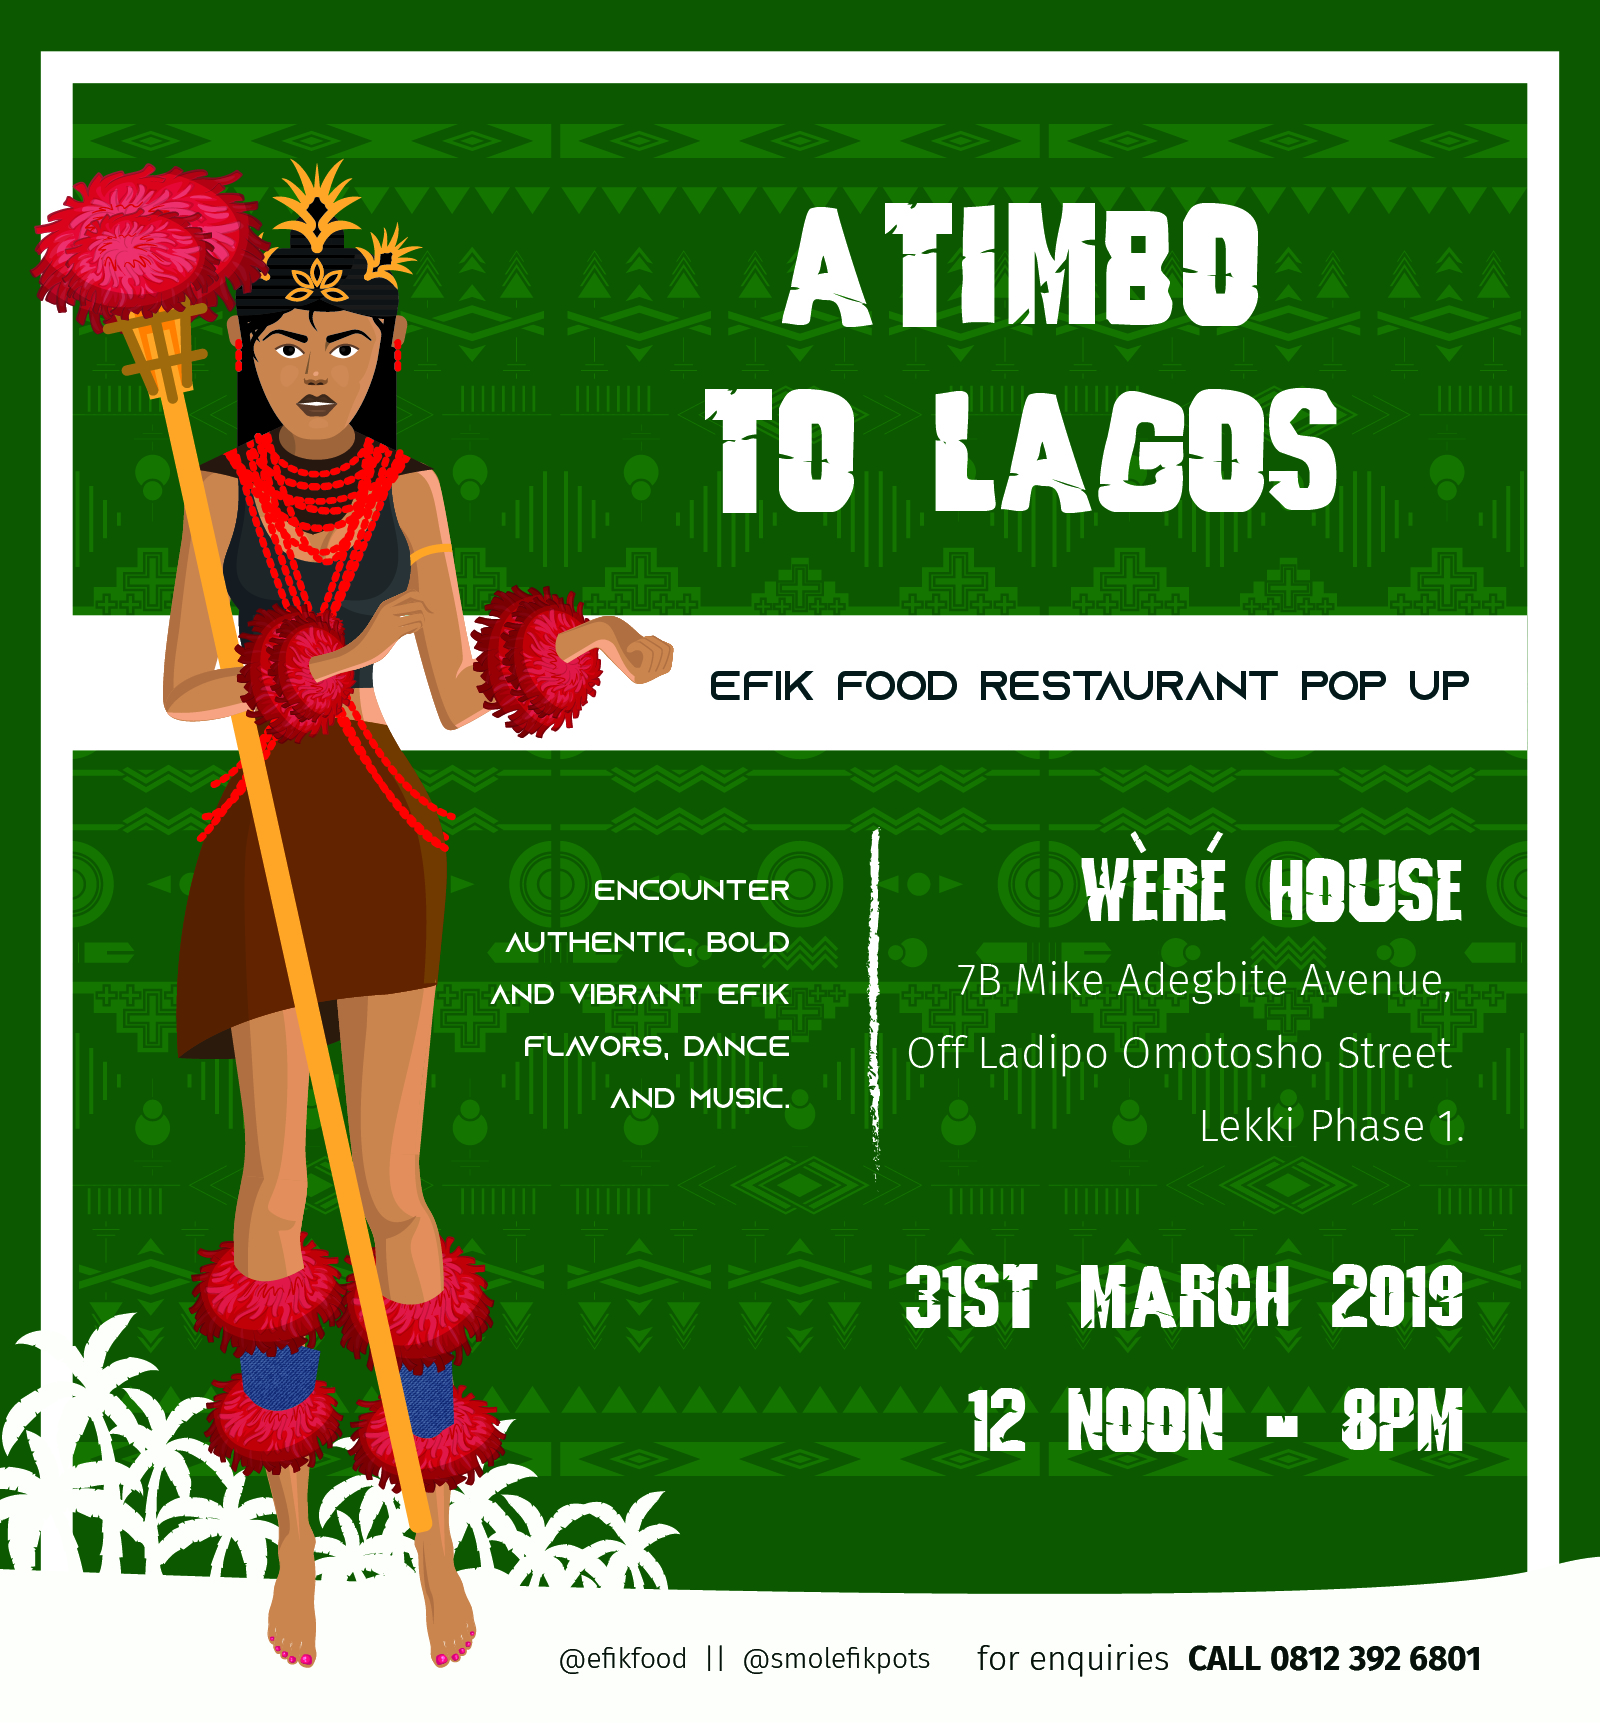 Atimbo to Lagos Post free event in Nigeria using tickethub.ng, buy and sell tickets to event